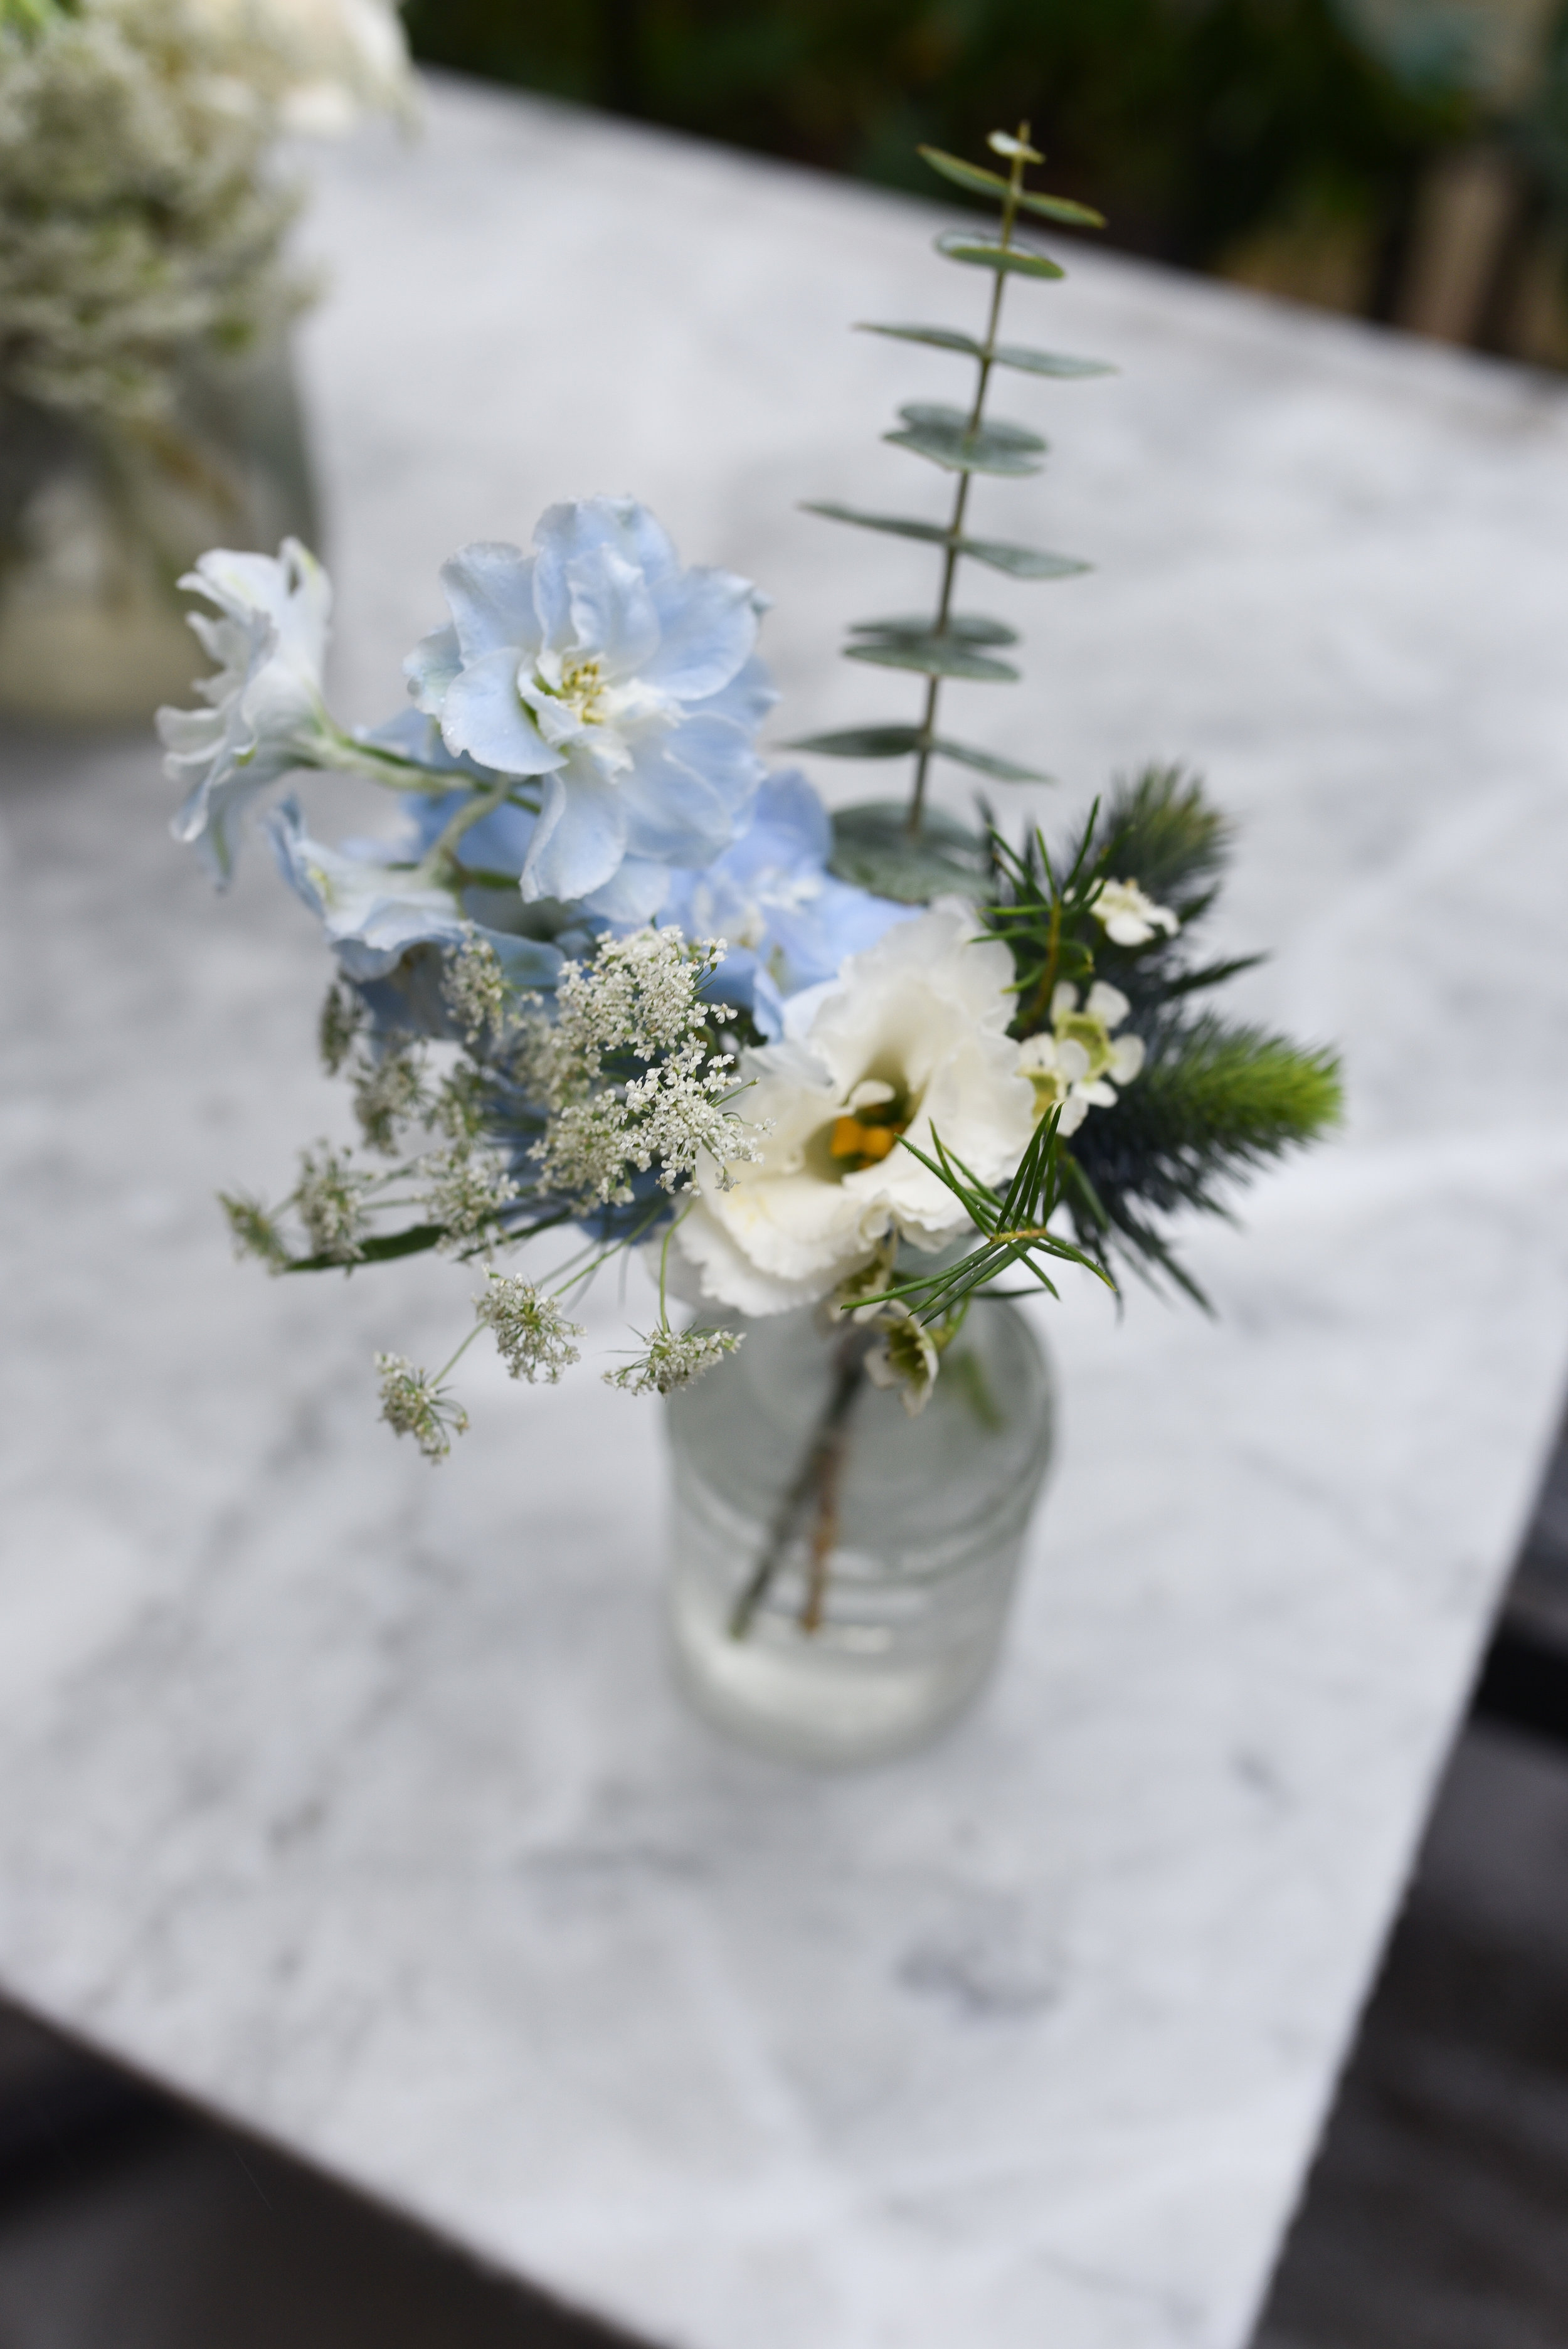 A lovely blue and white garden style bud vase